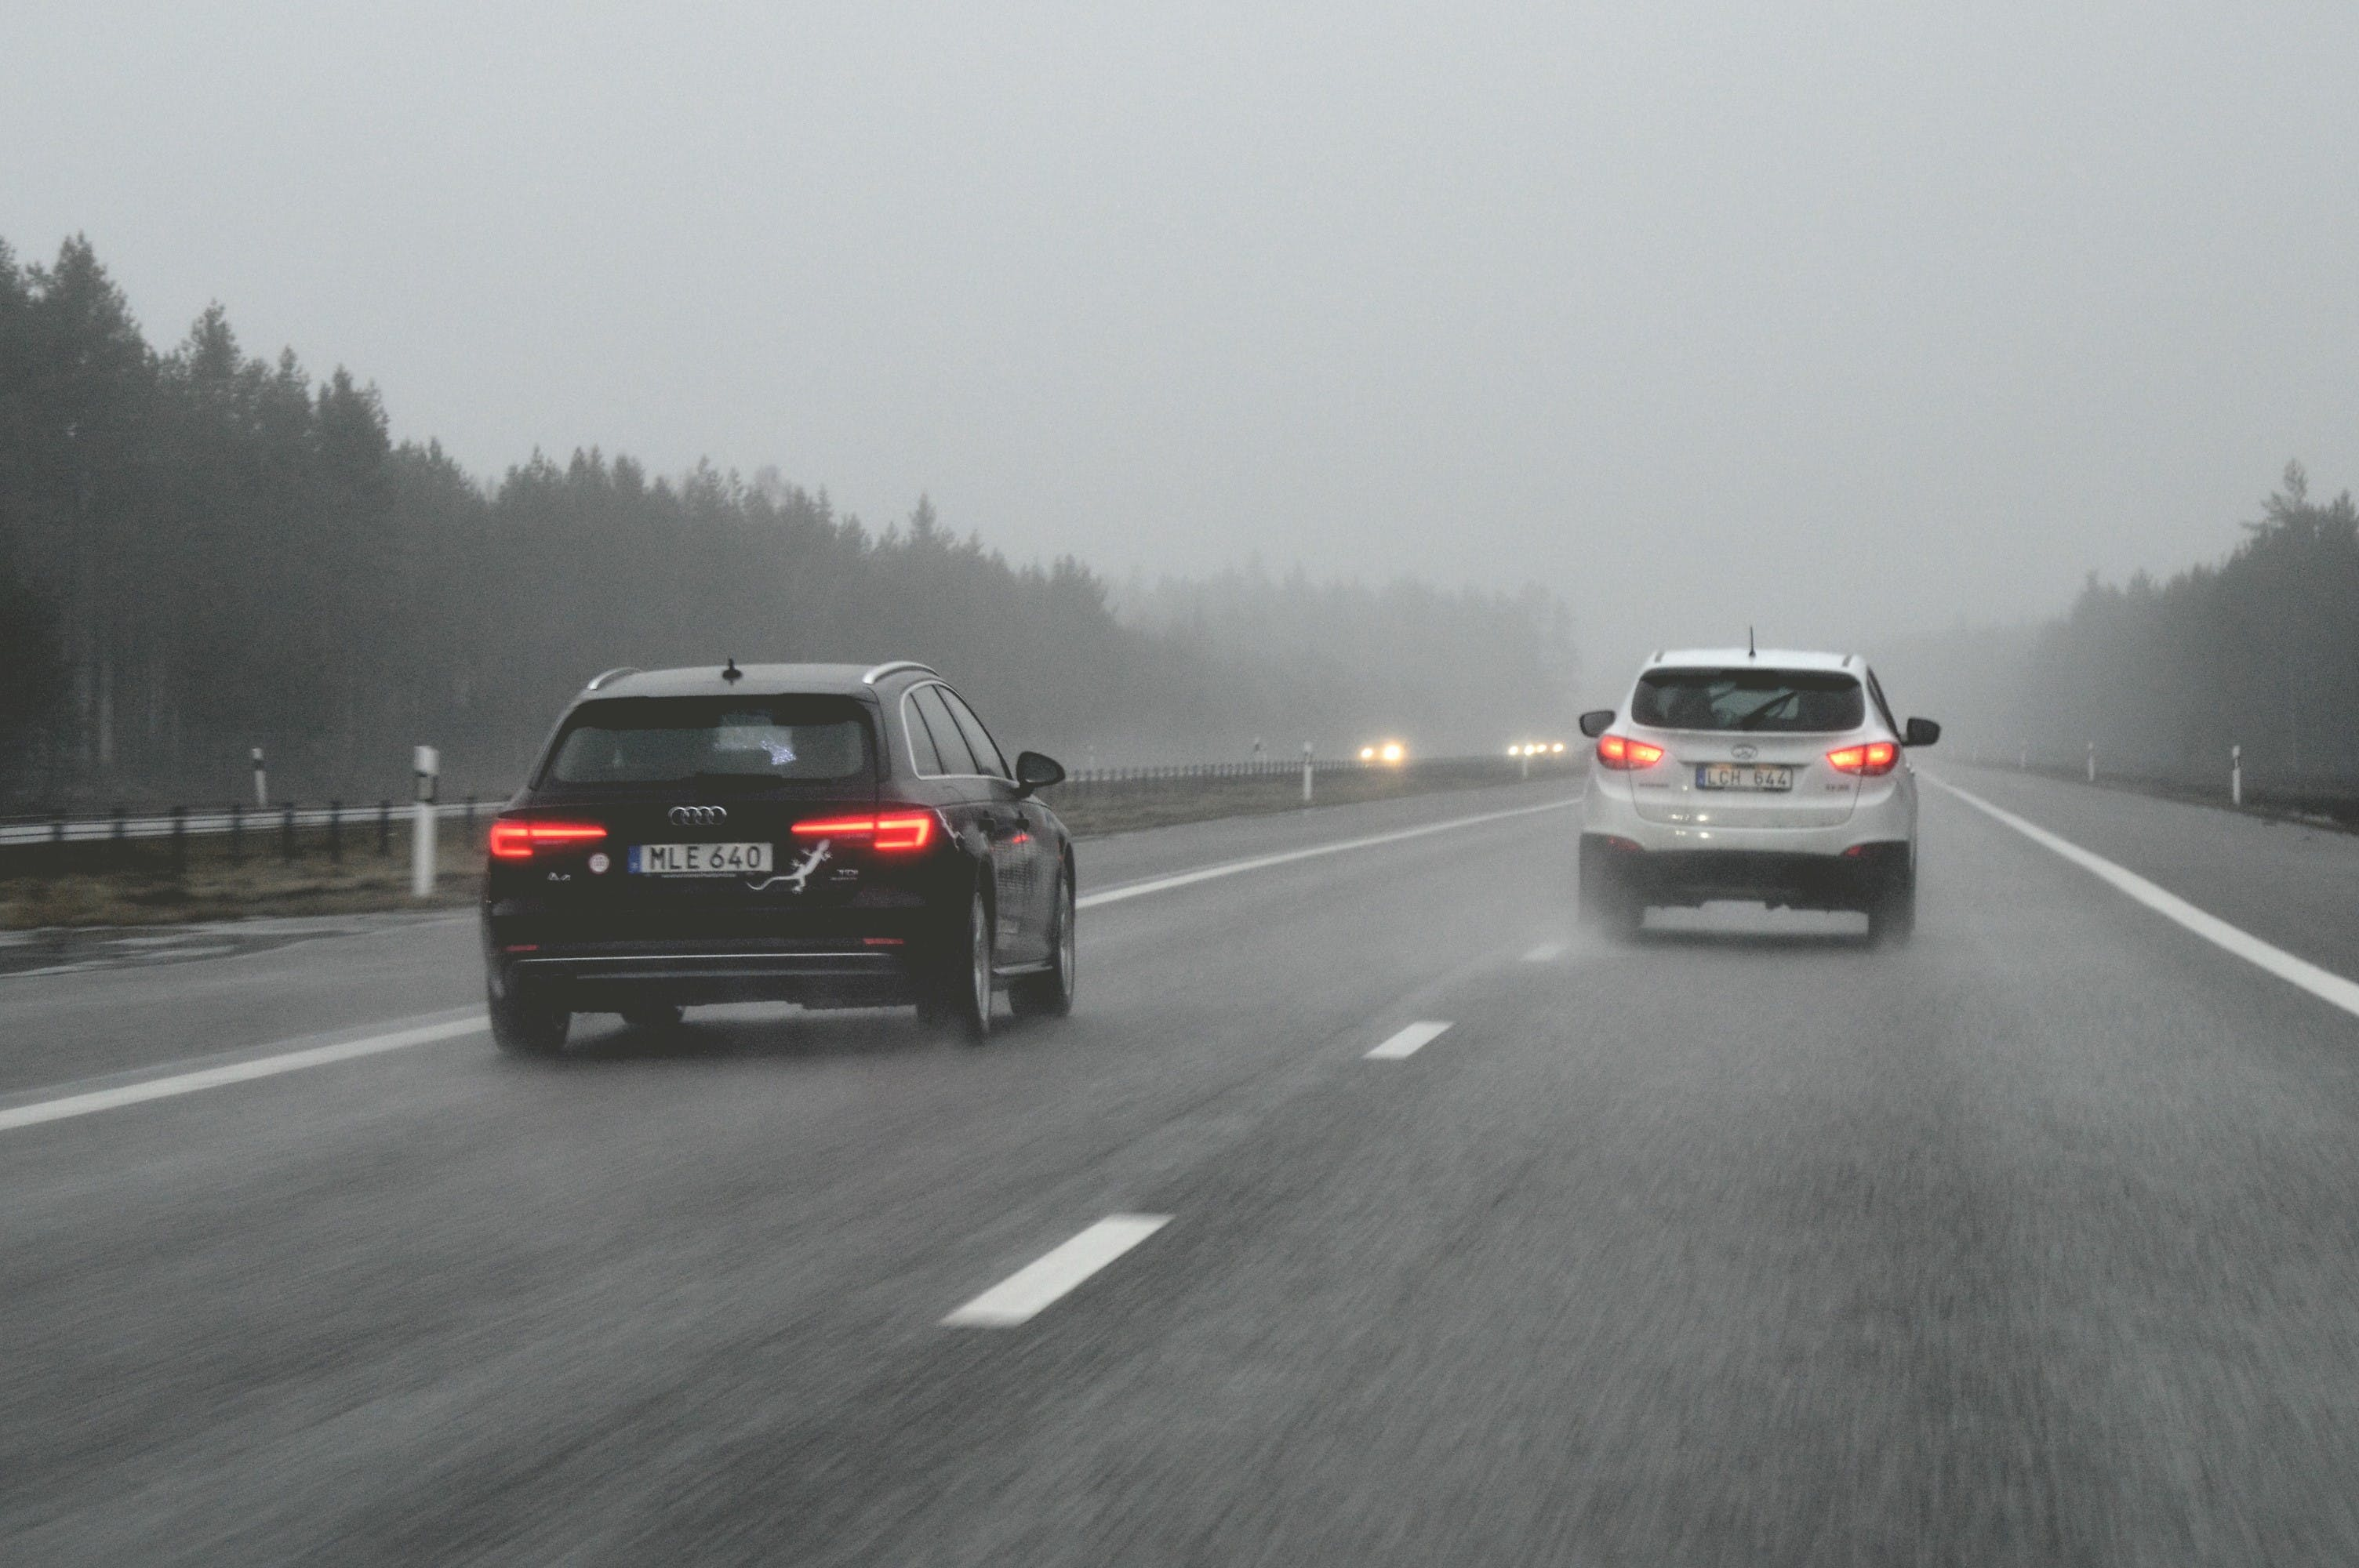 Free stock photo of cars, fog, forest, highway